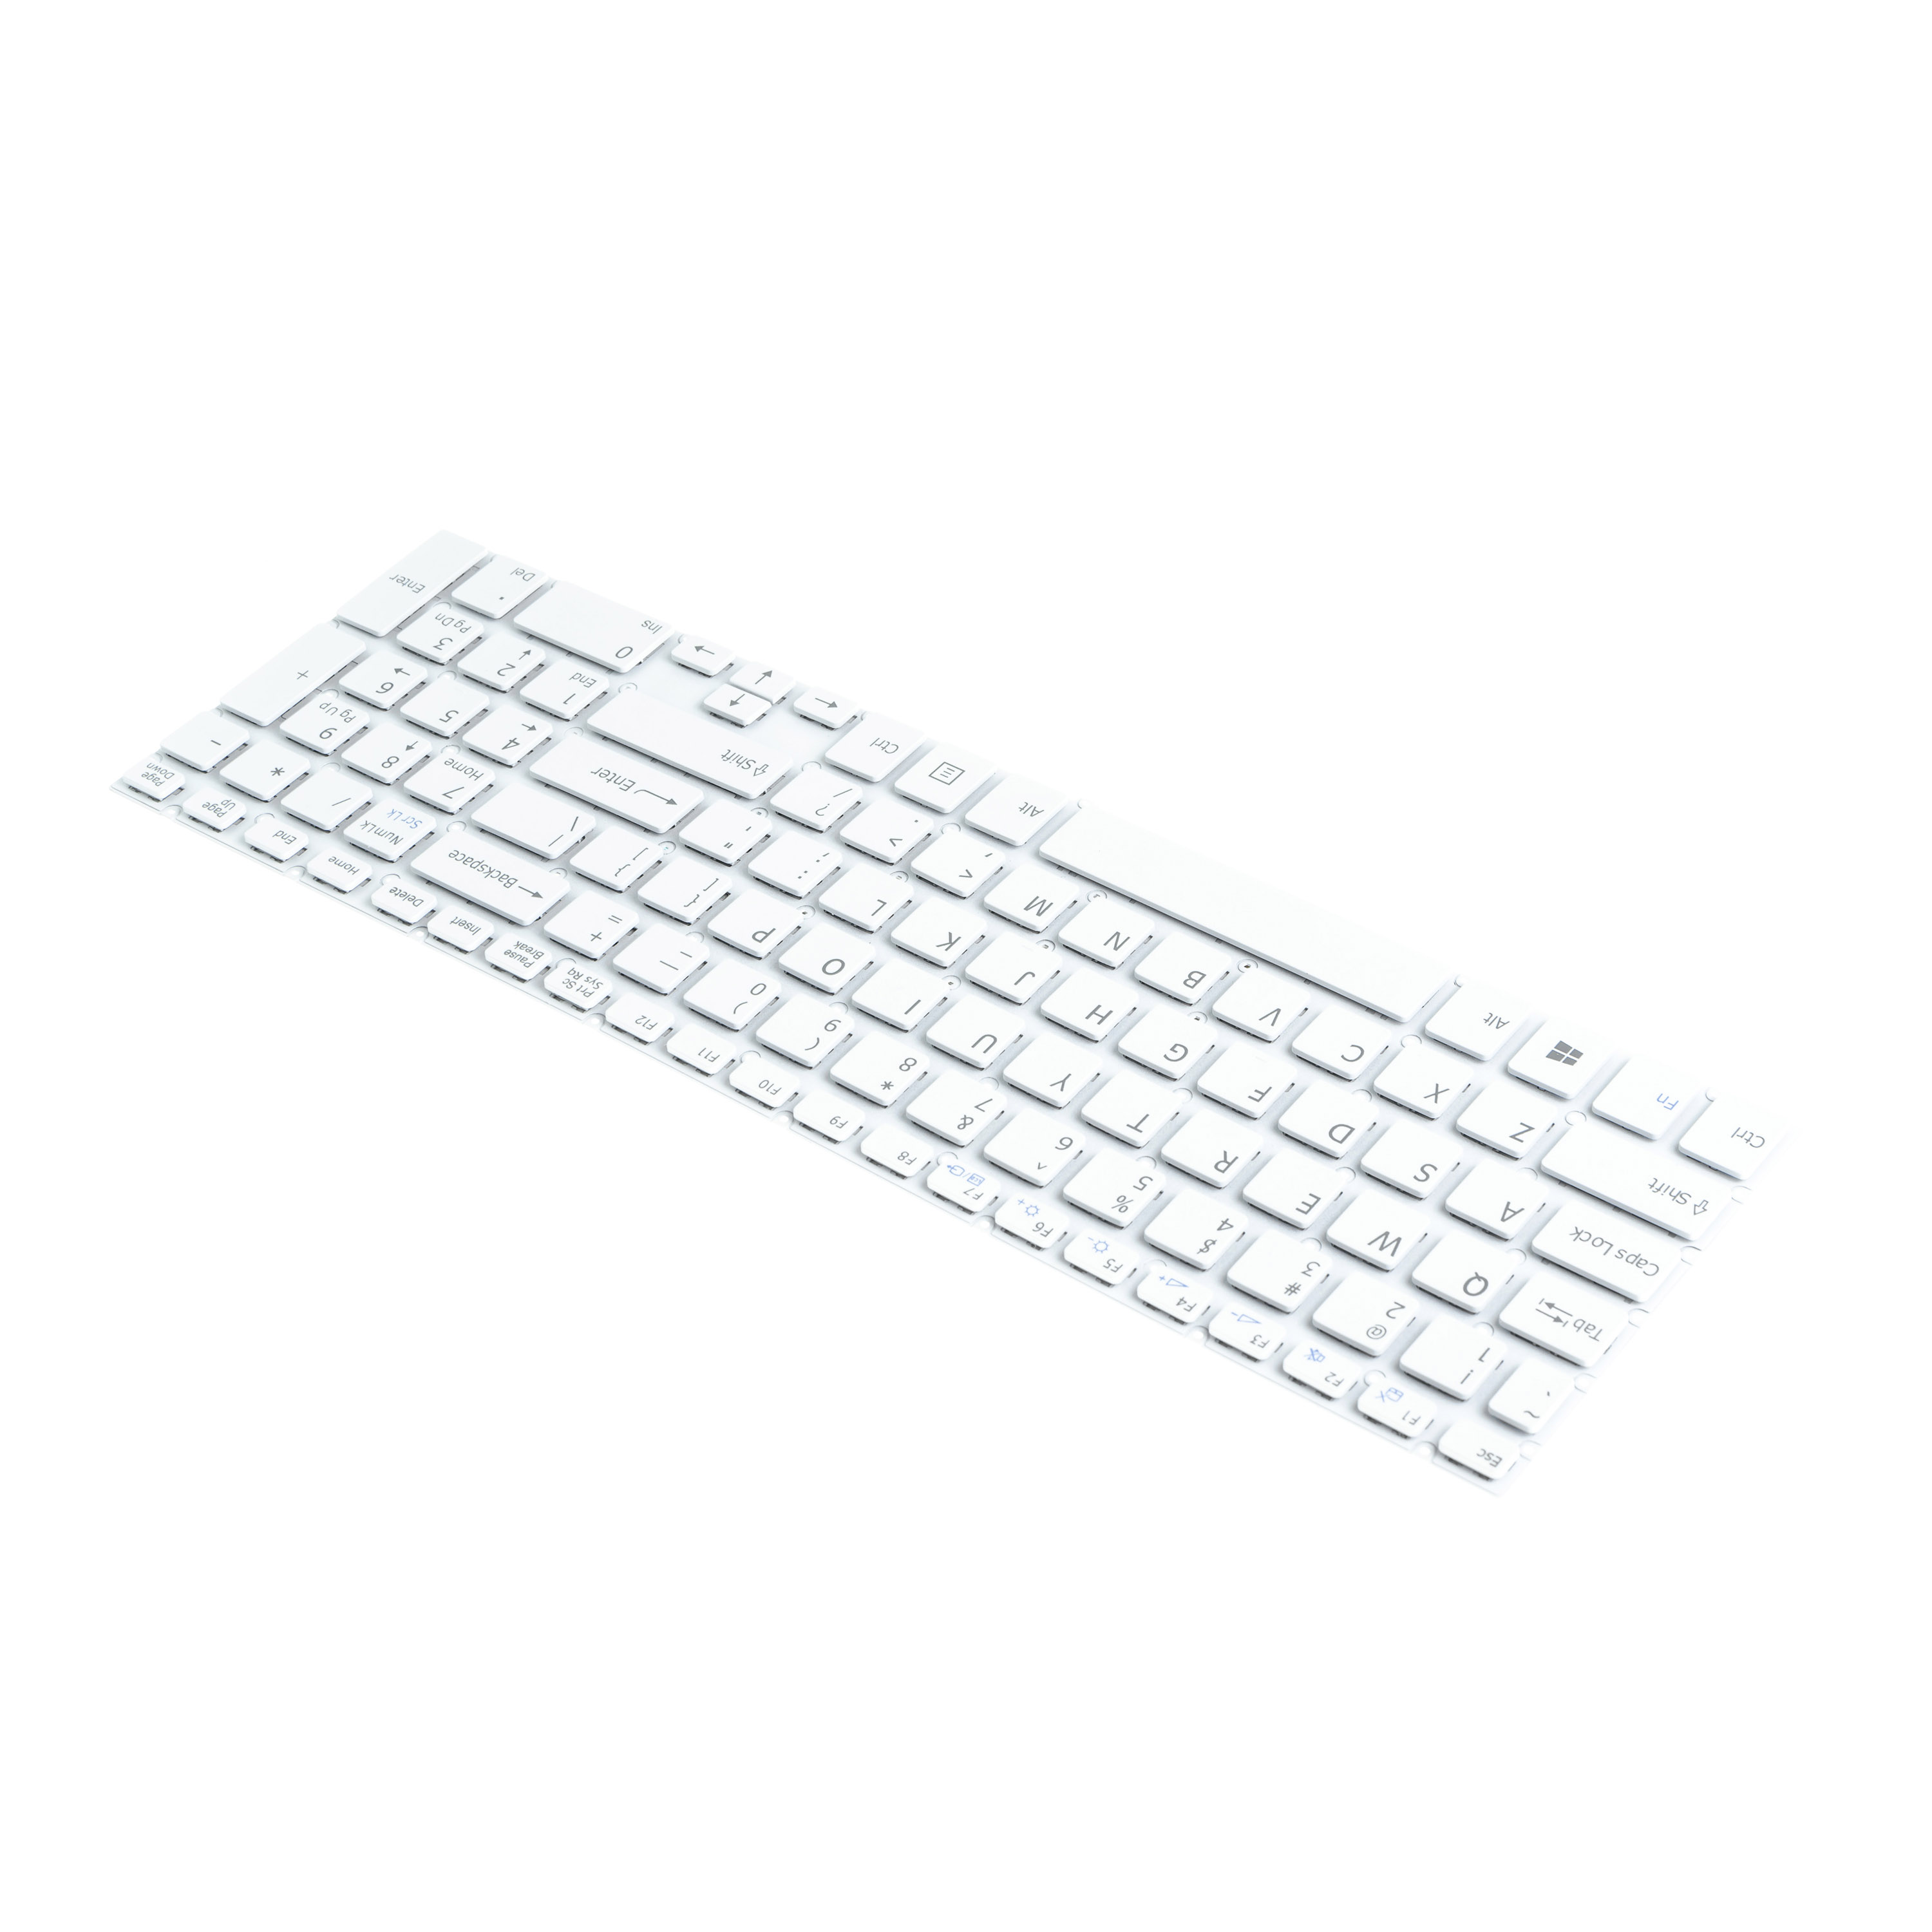 Clavier-pour-Ordinateur-Sony-Vaio-SVF1532K1EB-SVF1532K1EW-QWERTY-US-English